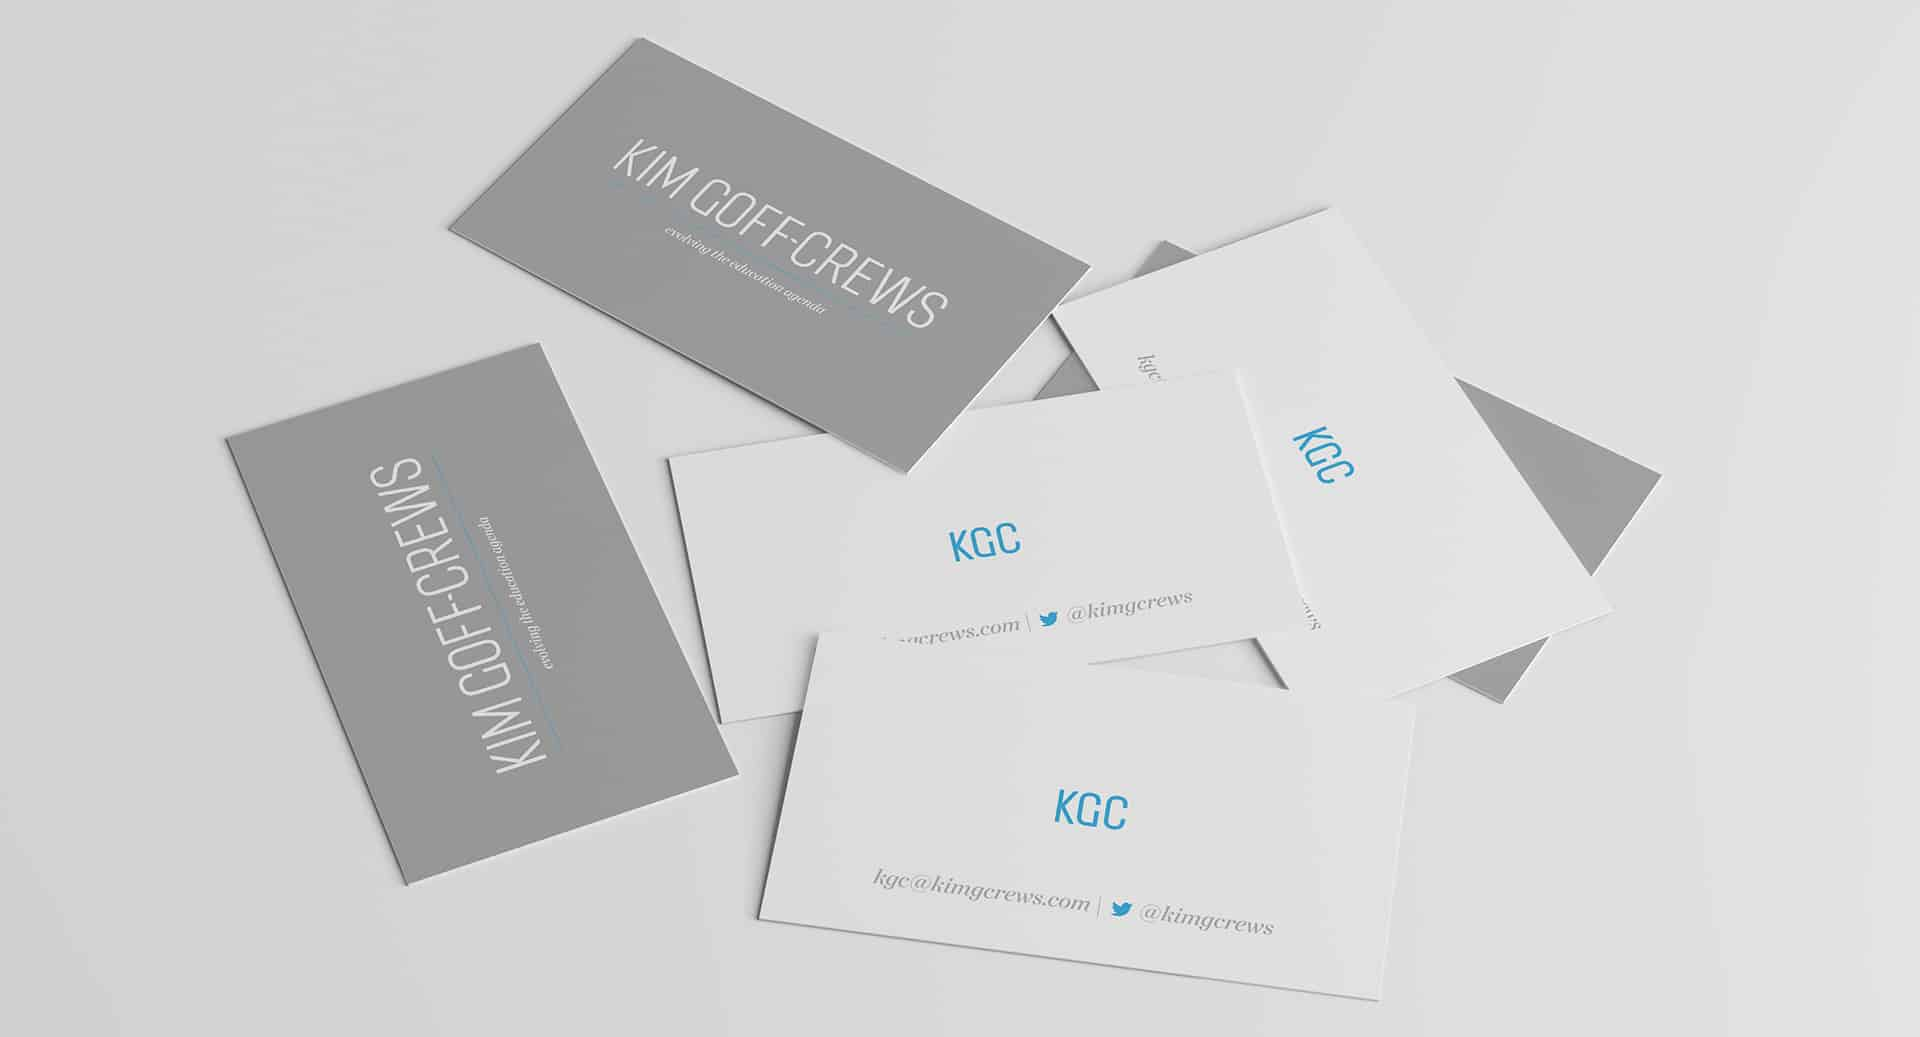 kgc-businesscards-halfwidth